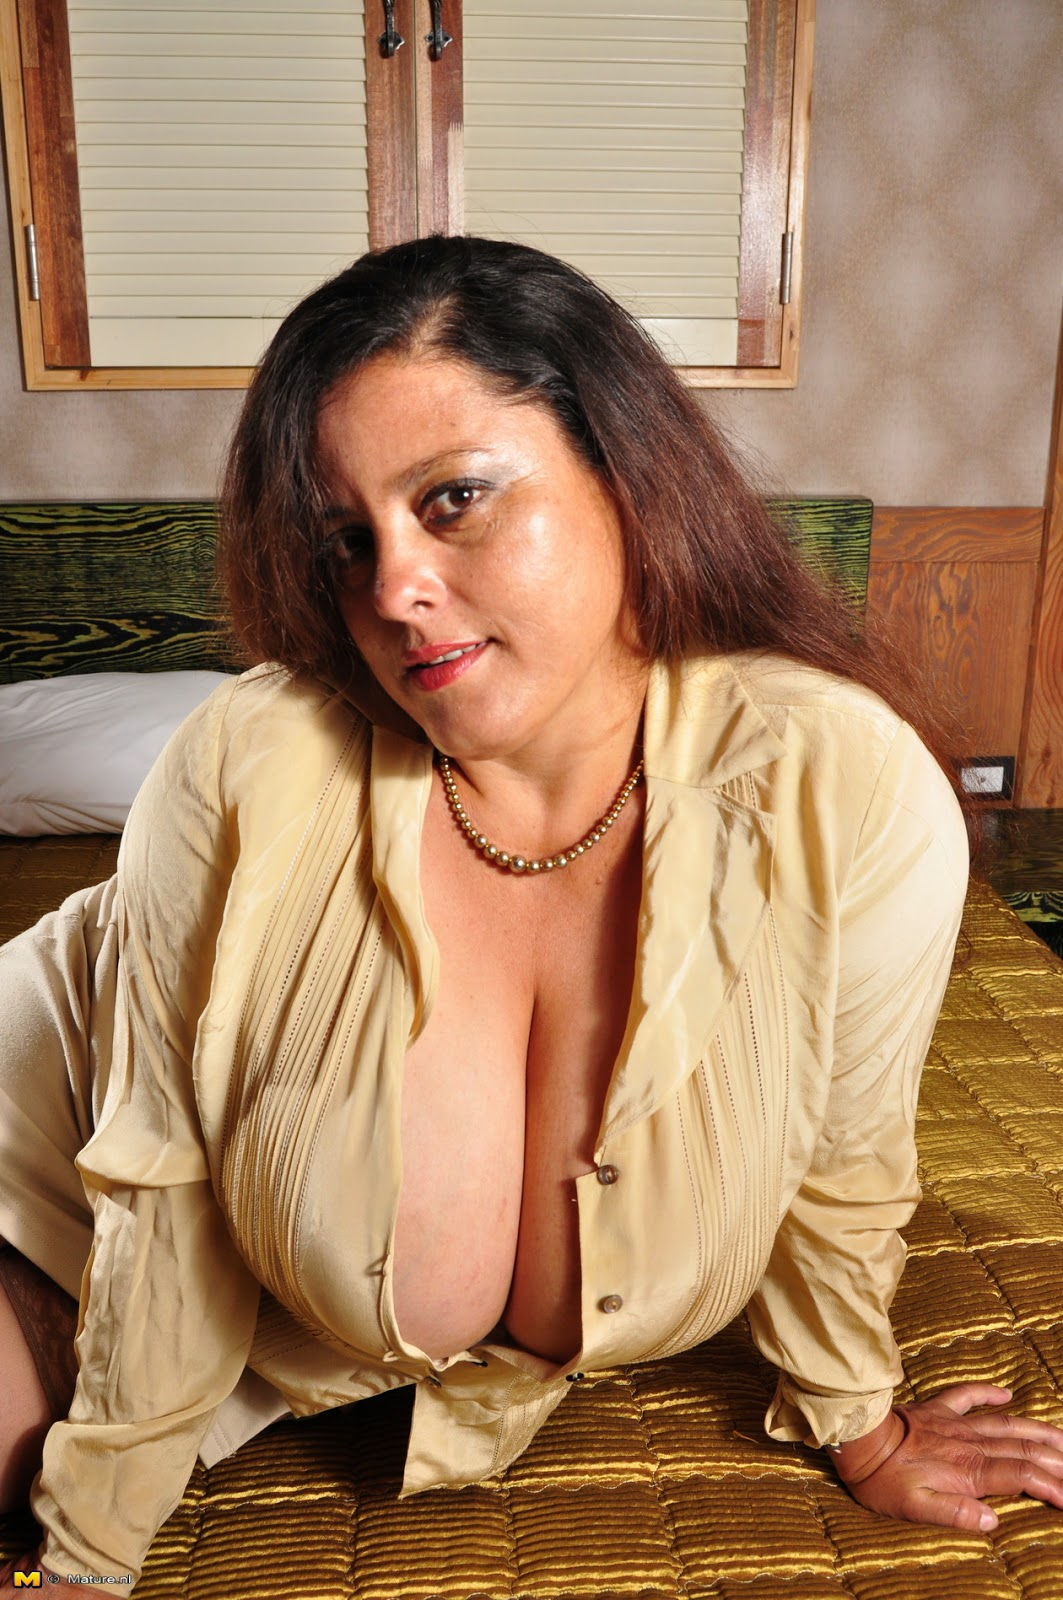 Milf queen carrie ann in sexy outfit taking bbc - 1 part 1